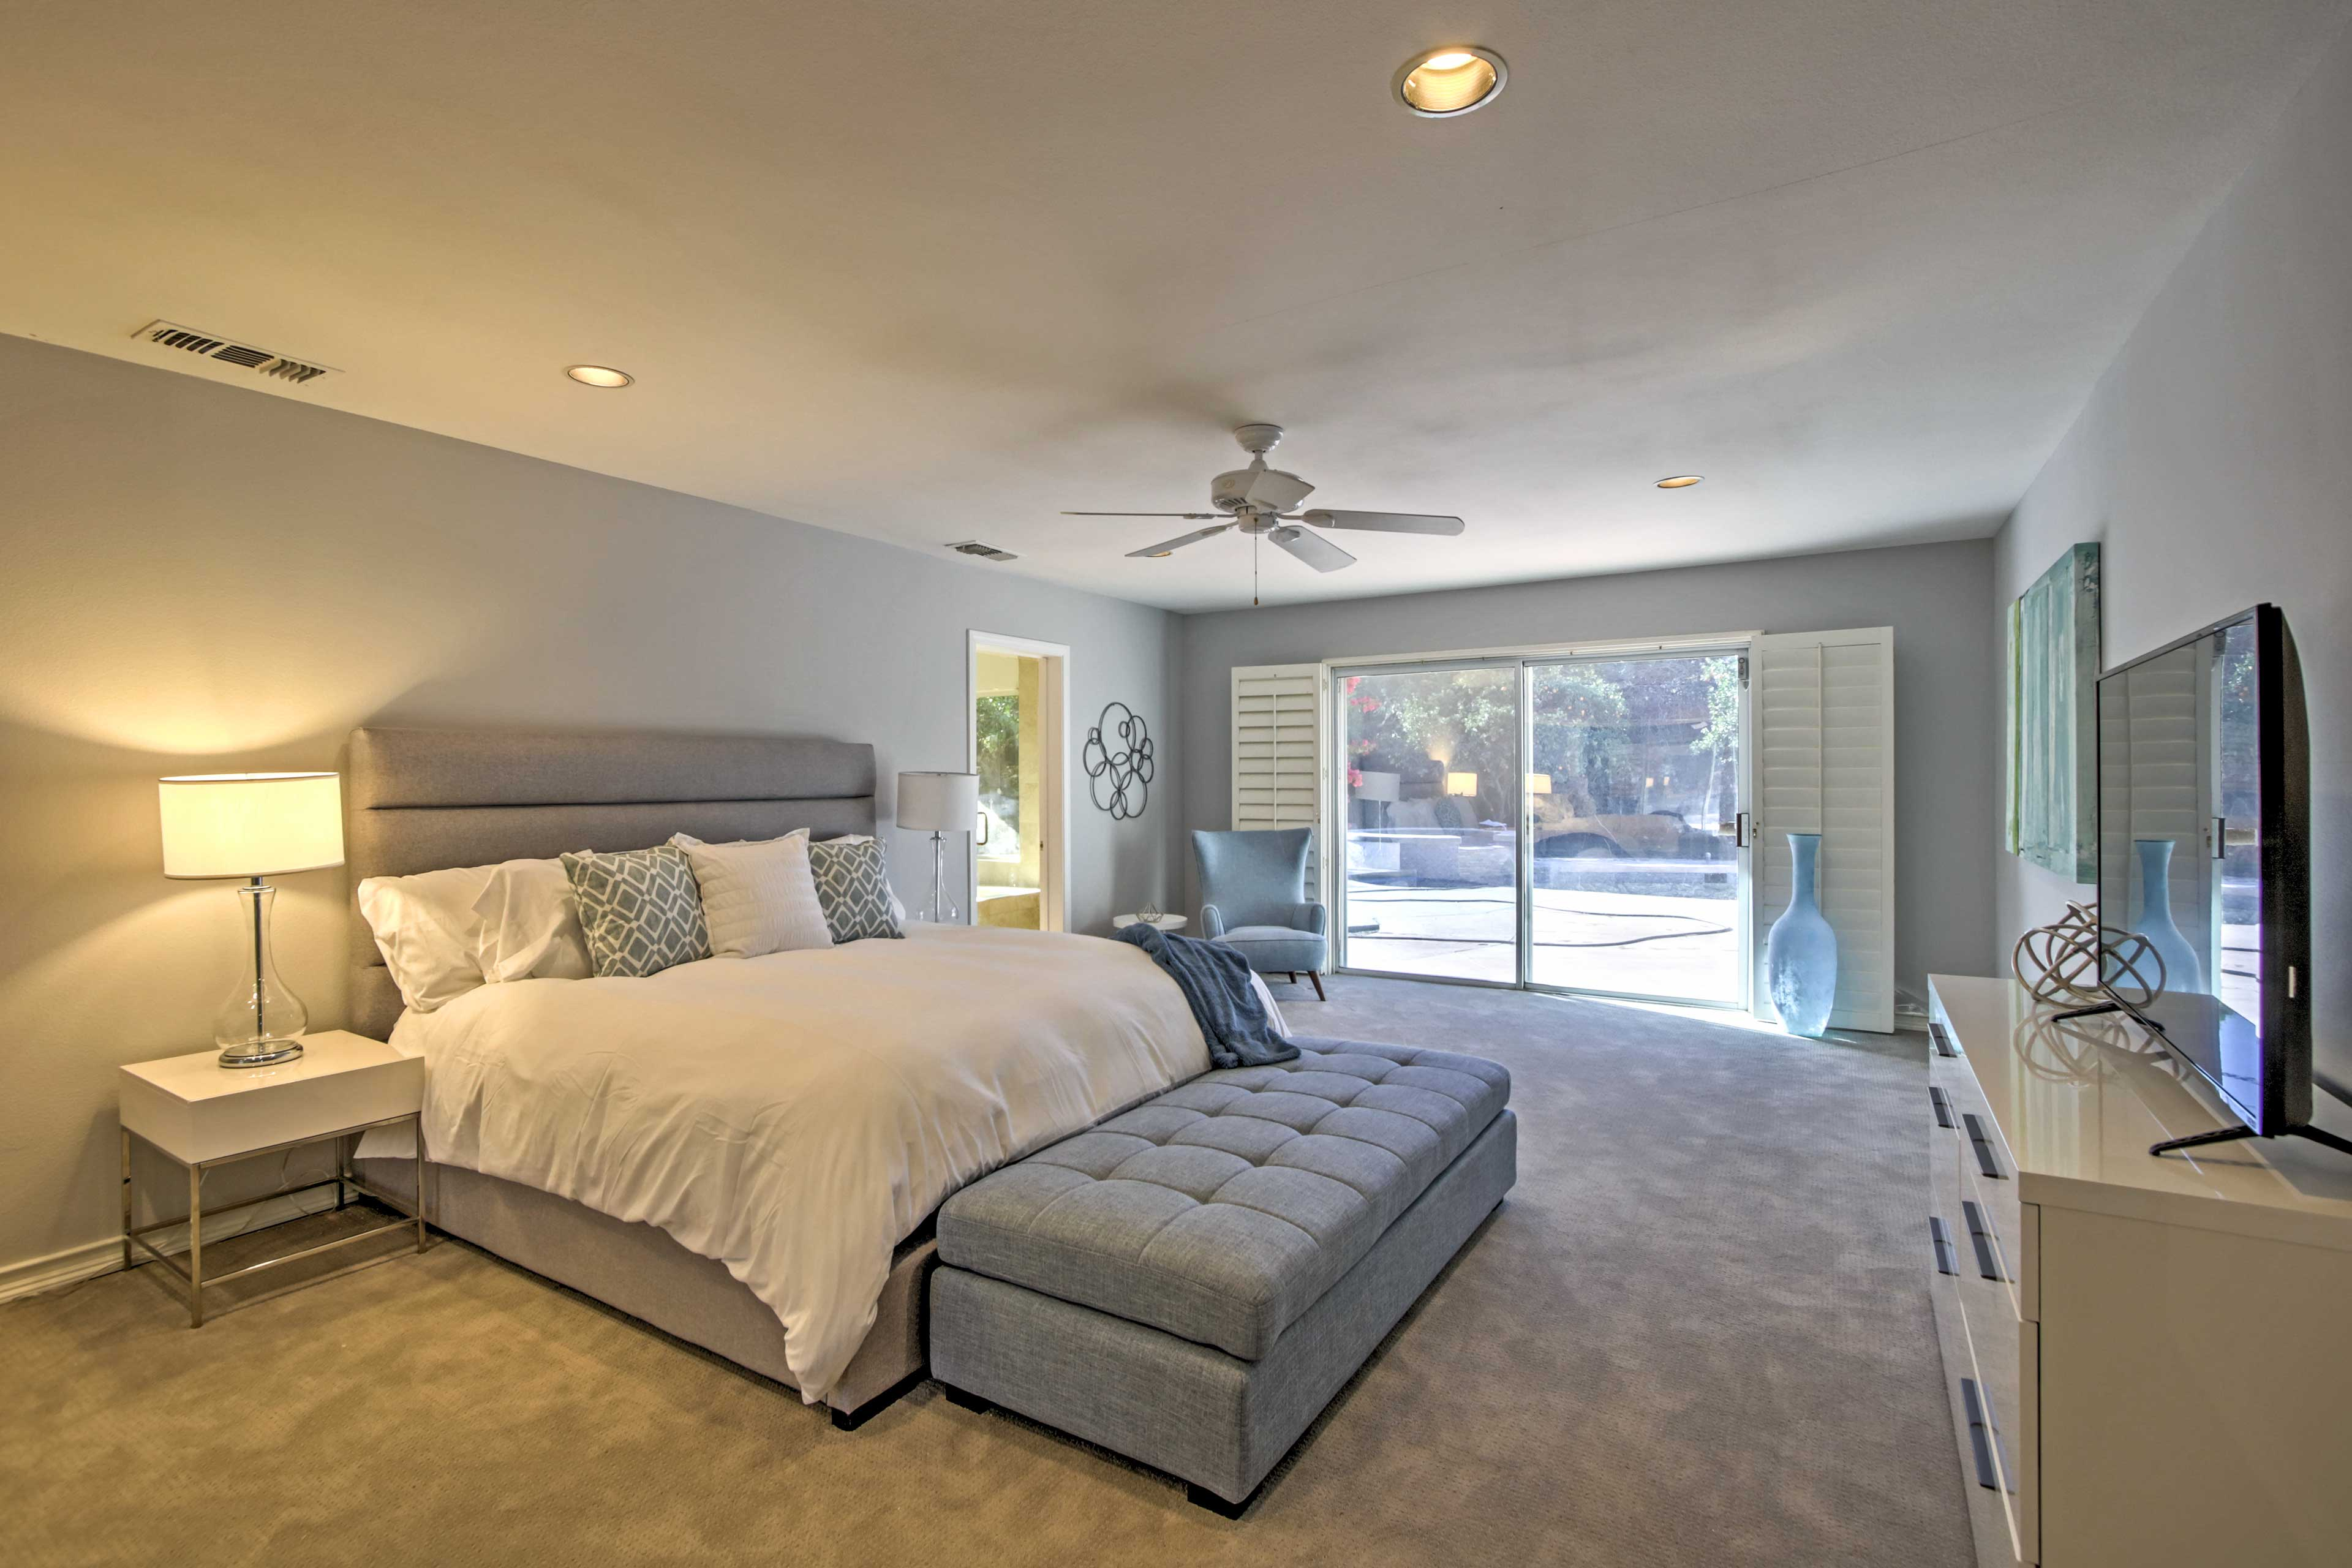 Each bedroom has a king-sized bed, en-suite bath, and flat-screen TV.